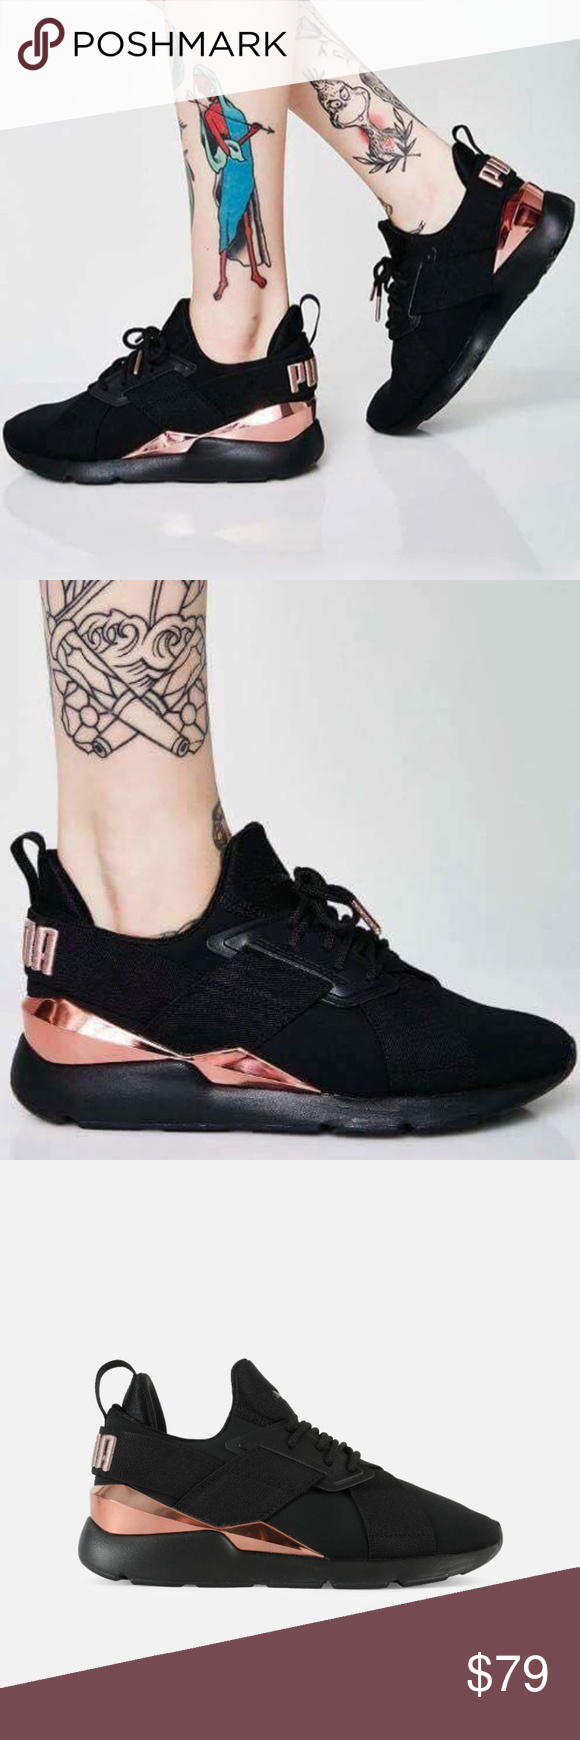 2b7d554ab1a1 PUMA Muse Metal Sneakers NIB! In Black Rose Gold Break loose. The Muse  Metal is taking charge and taking names with a running-inspired